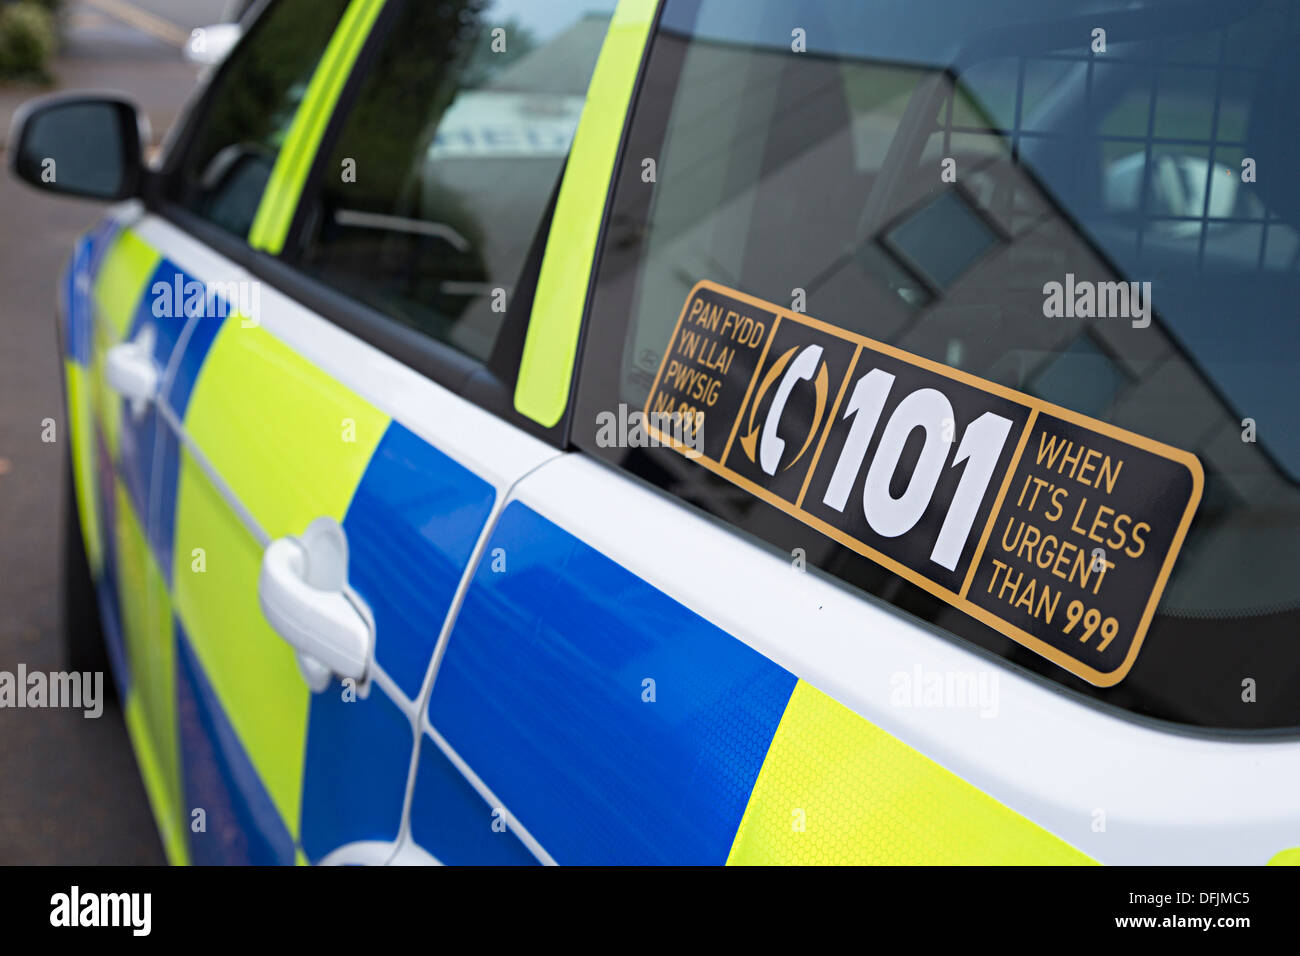 Police sticker on car for telephone 101 less urgent calls